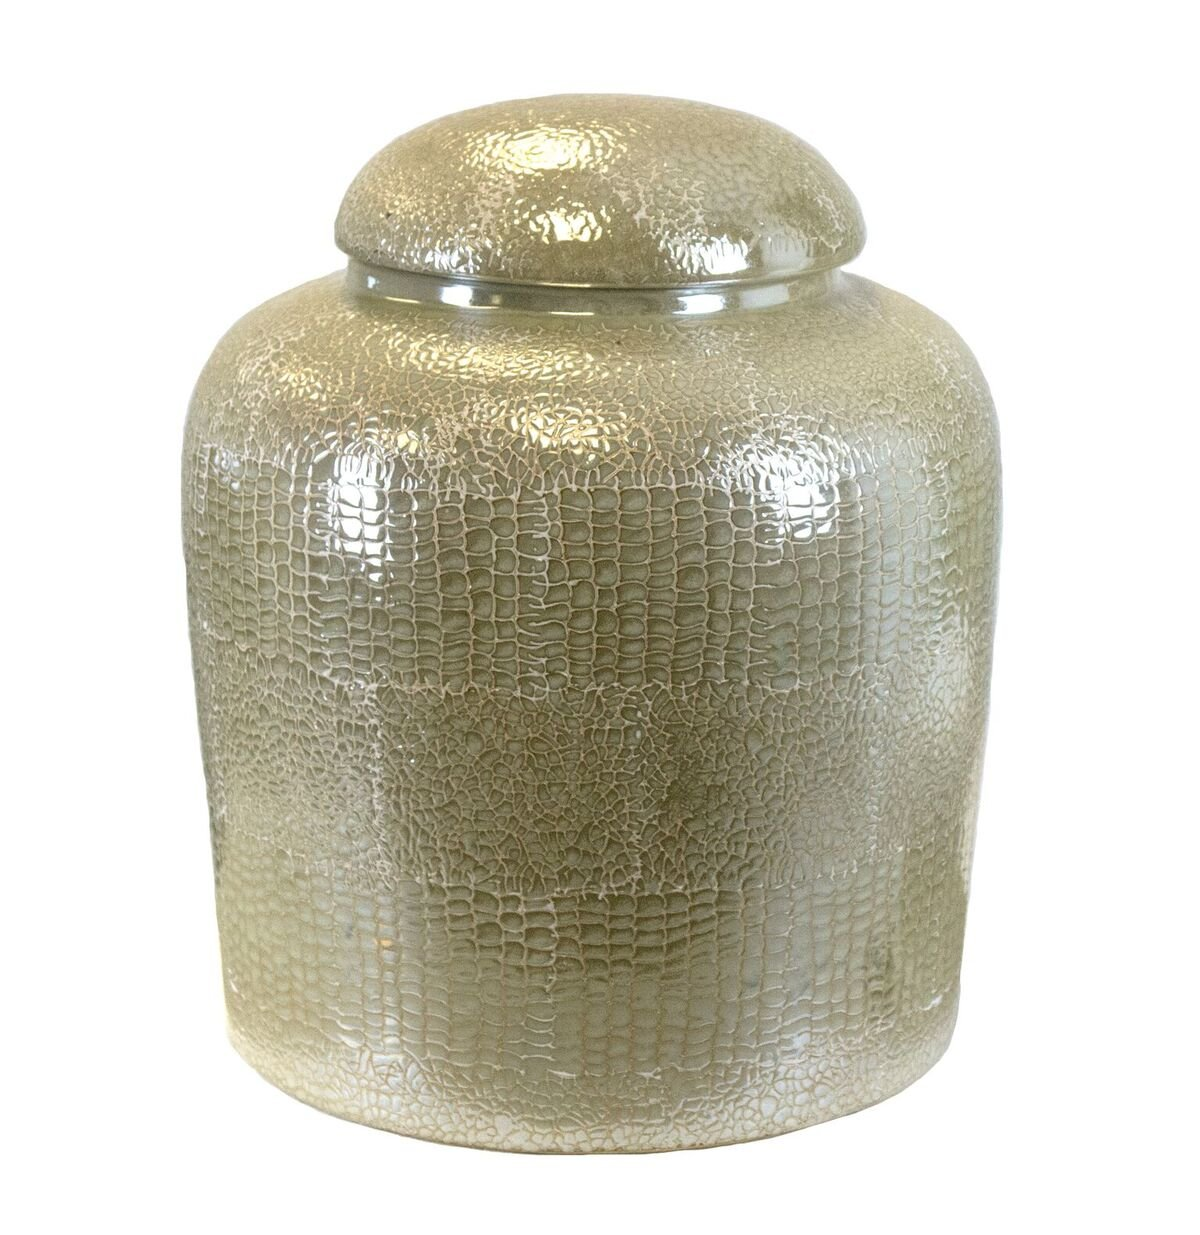 15 x 15 x 18 Inches Sagebrook Home 10484 Covered Jar Ceramic Pearl Snake Ceramic